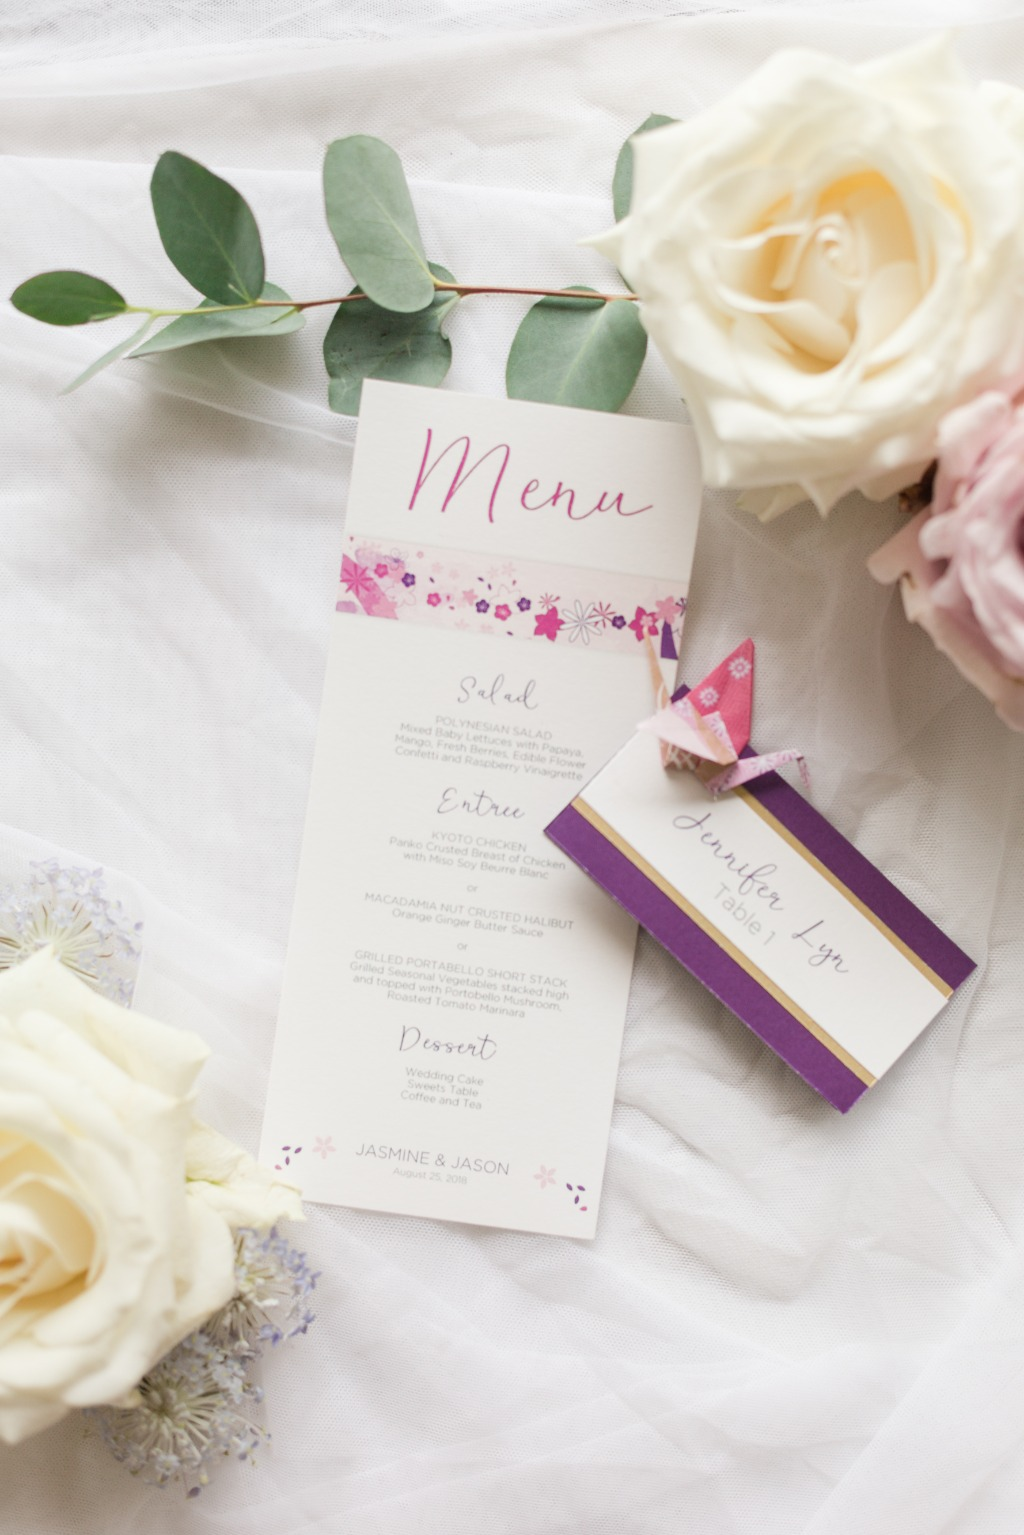 We're in love with these menu cards and placecards, designed to match the wedding invitation suite. Every placecard also had a hand